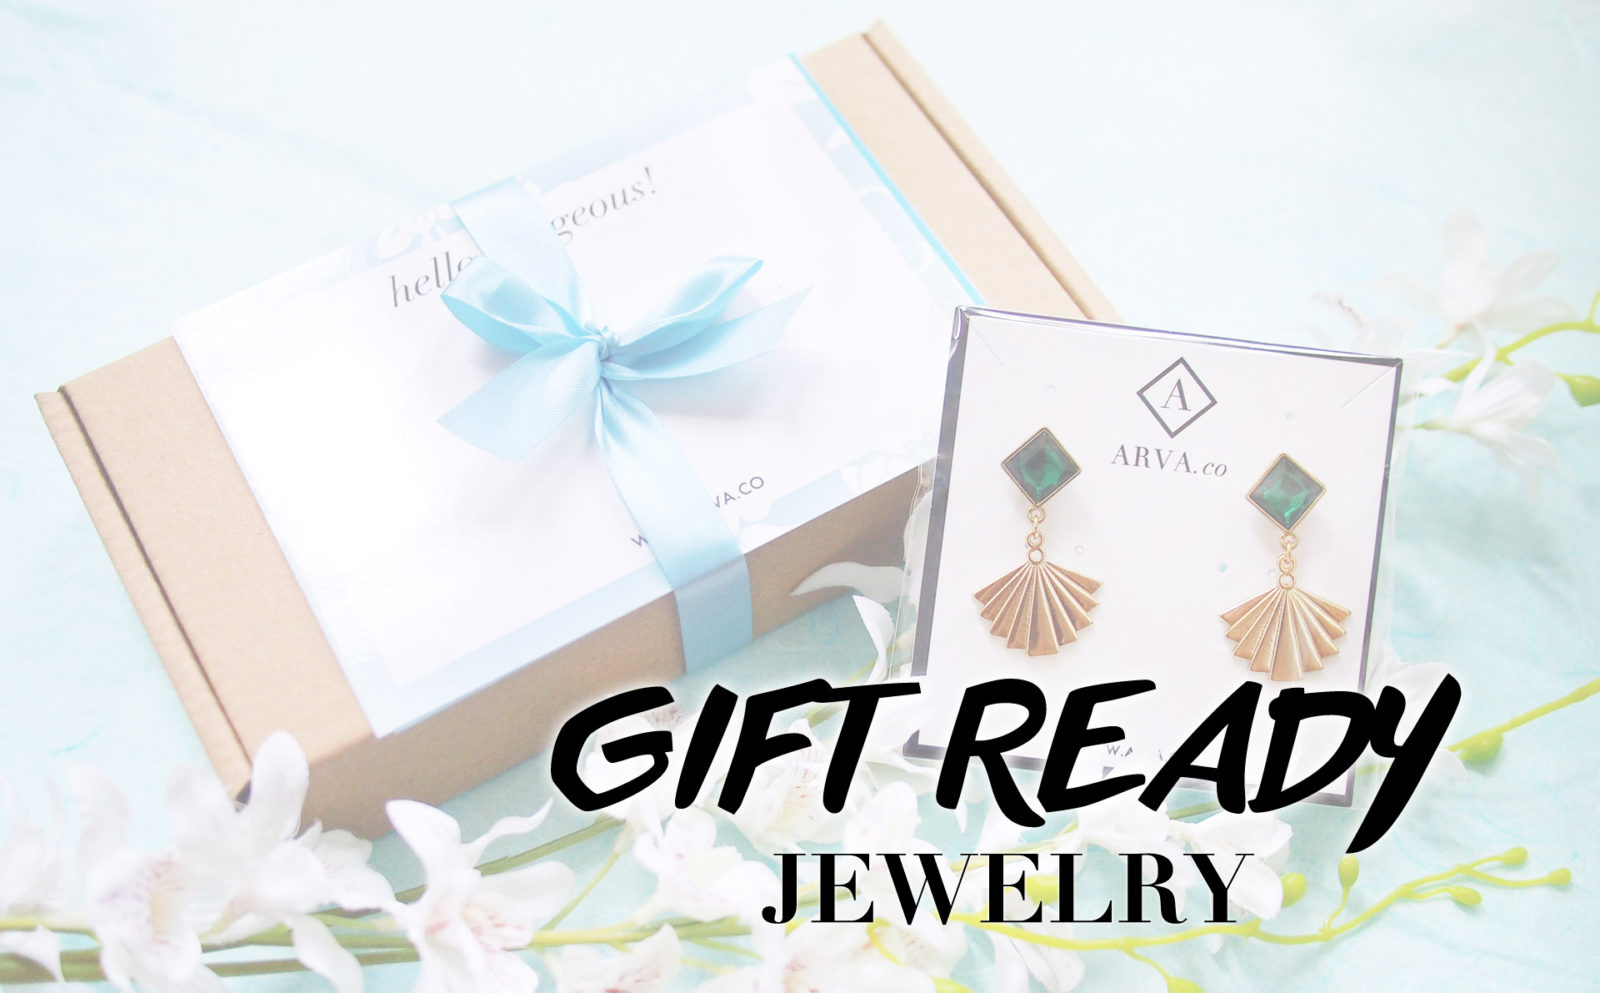 Jewelry ready as gifts